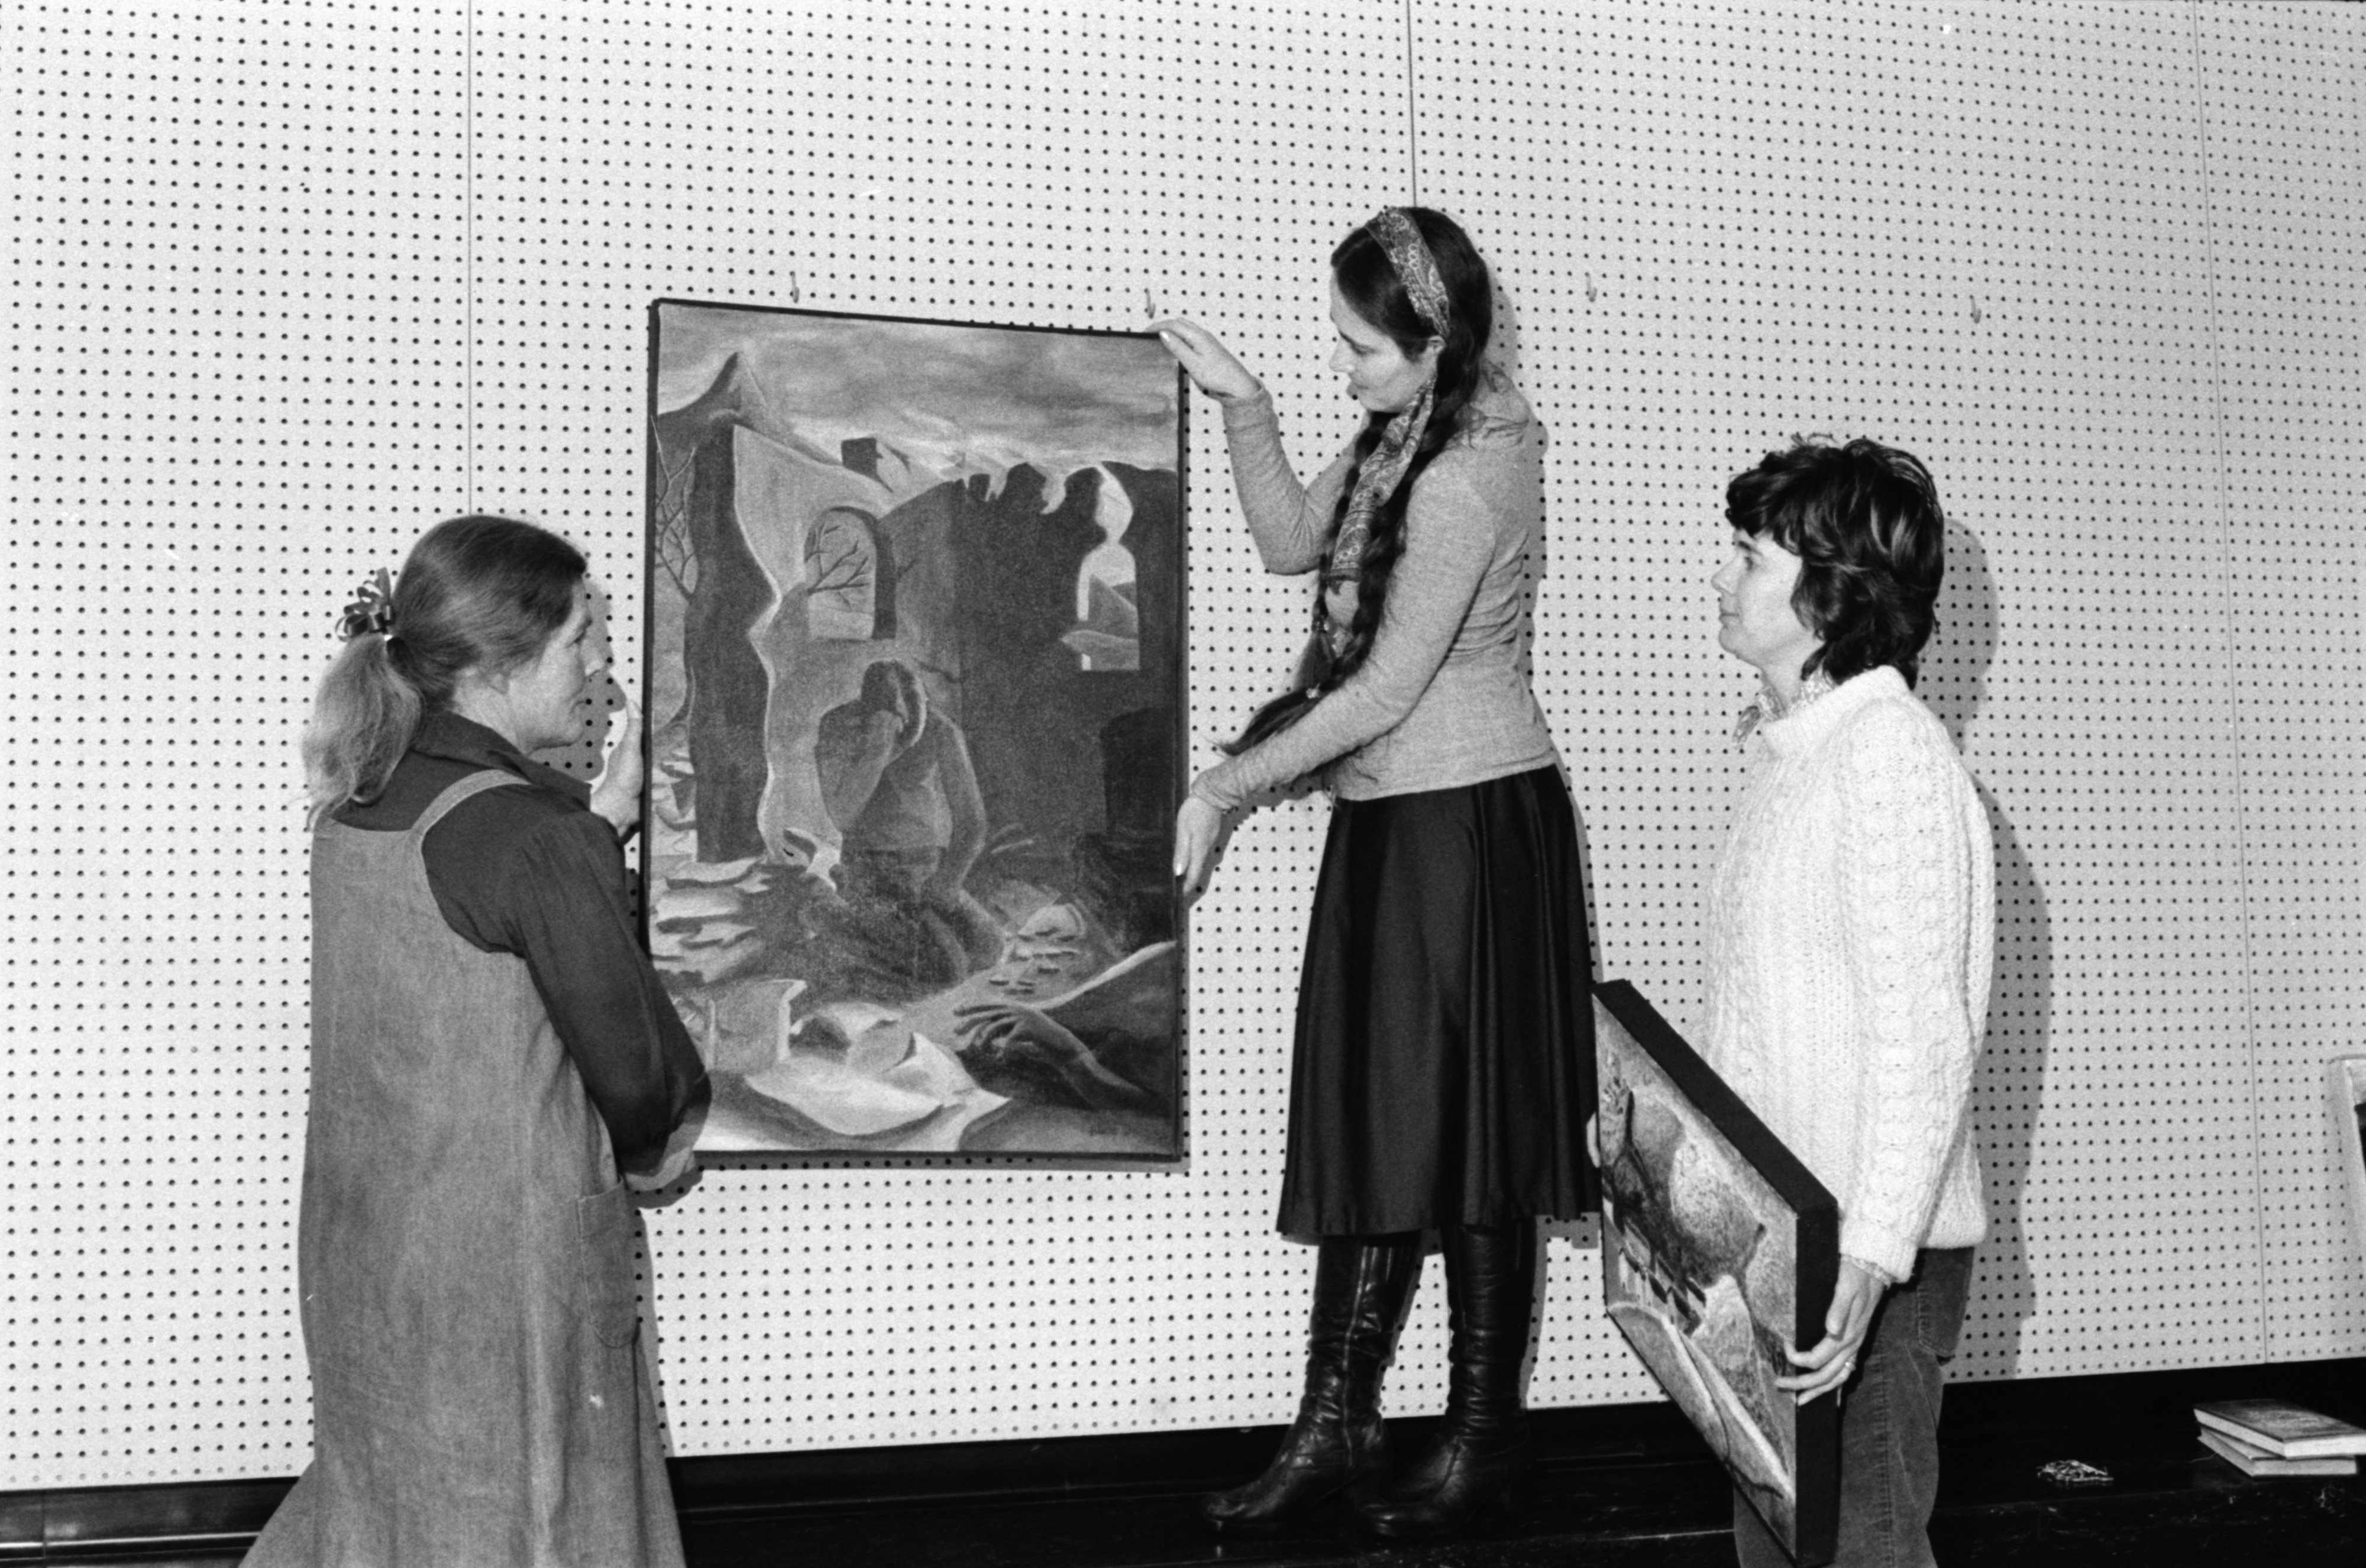 Huron High School Readies for Art Show at the Ann Arbor Public Library, January 1978 image